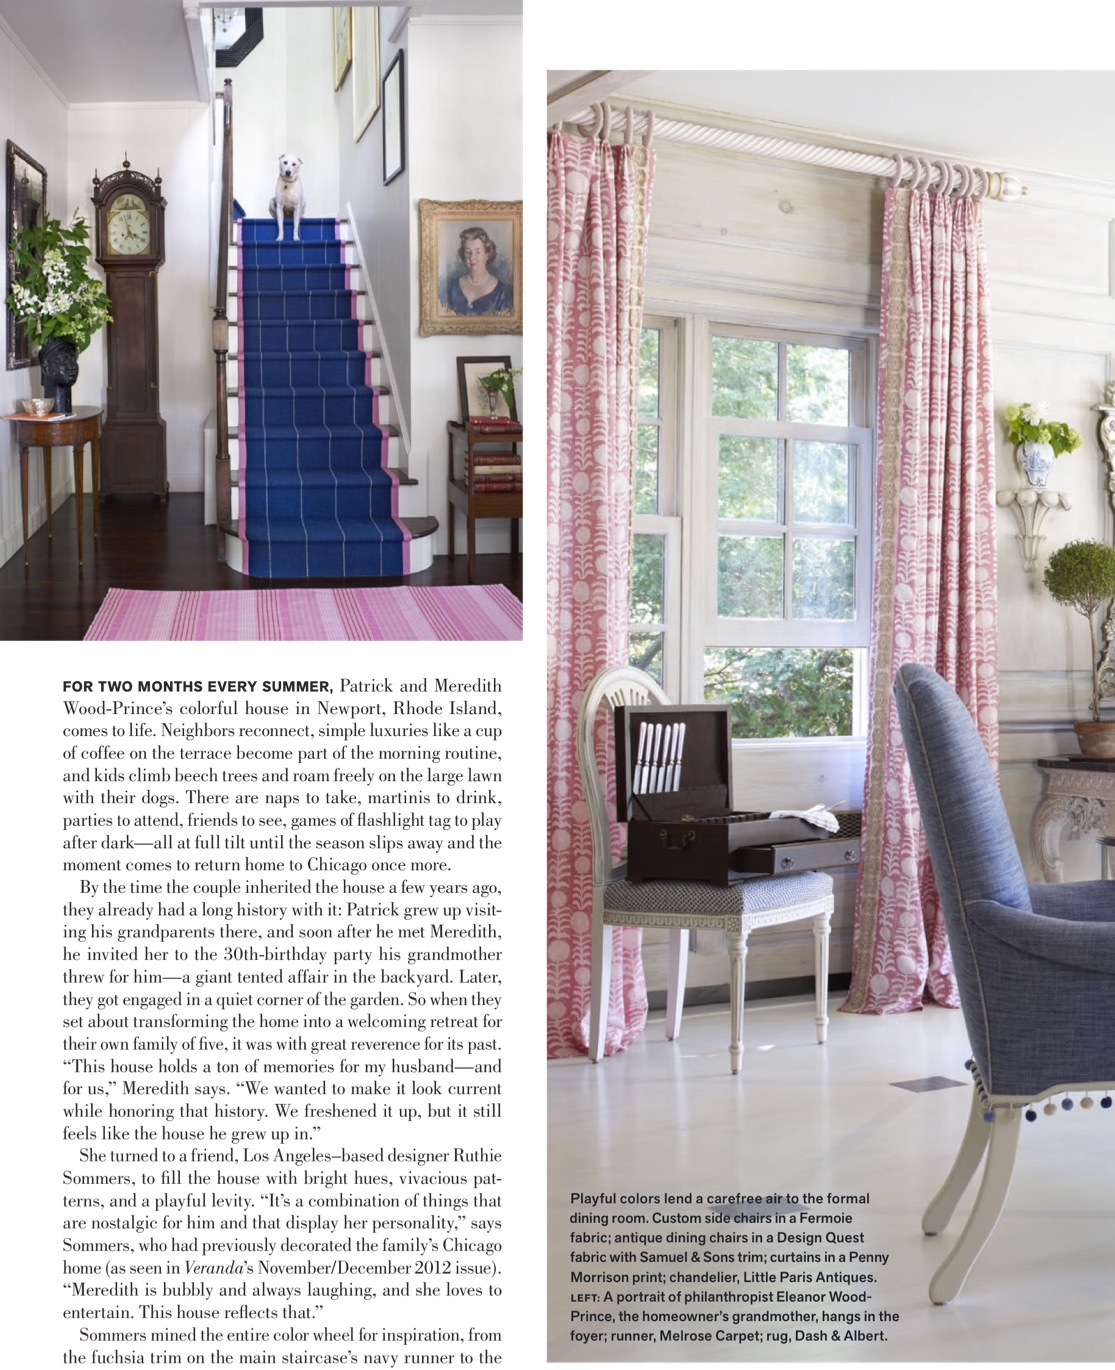 Ruthie Sommers in Veranda – Shelter Interior Design